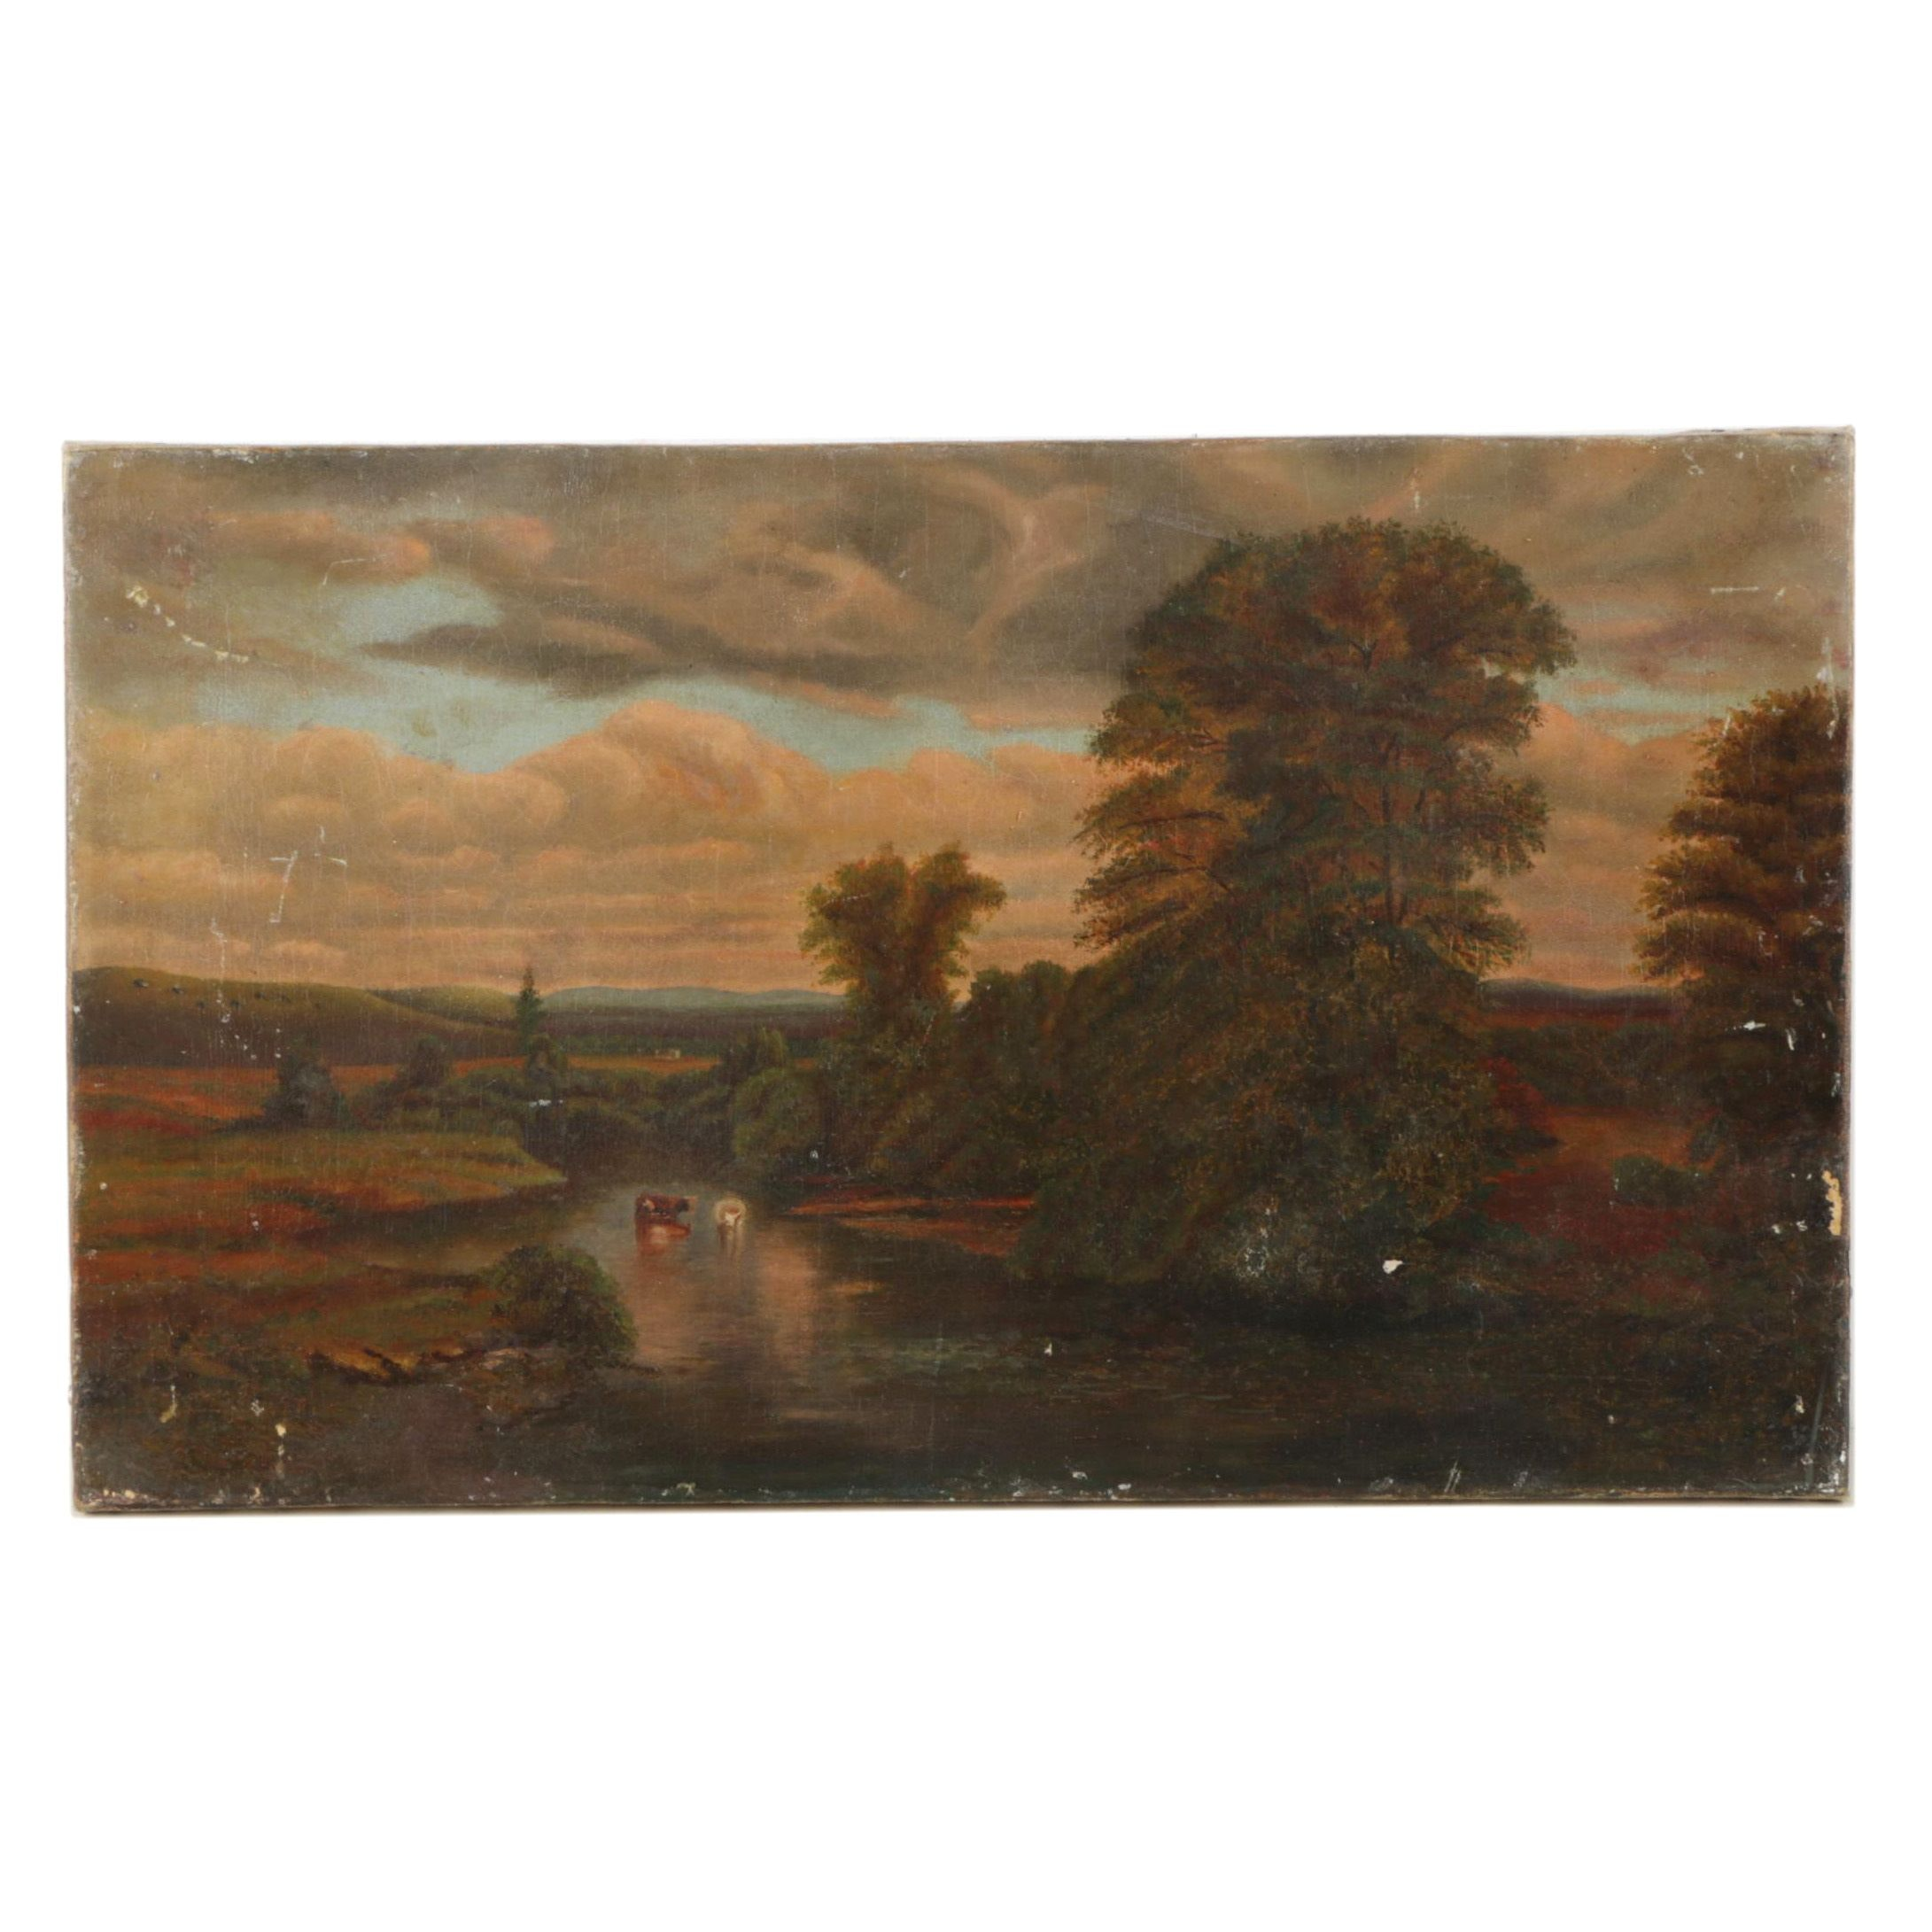 Late 19th Century European Oil Painting Landscape with Cows